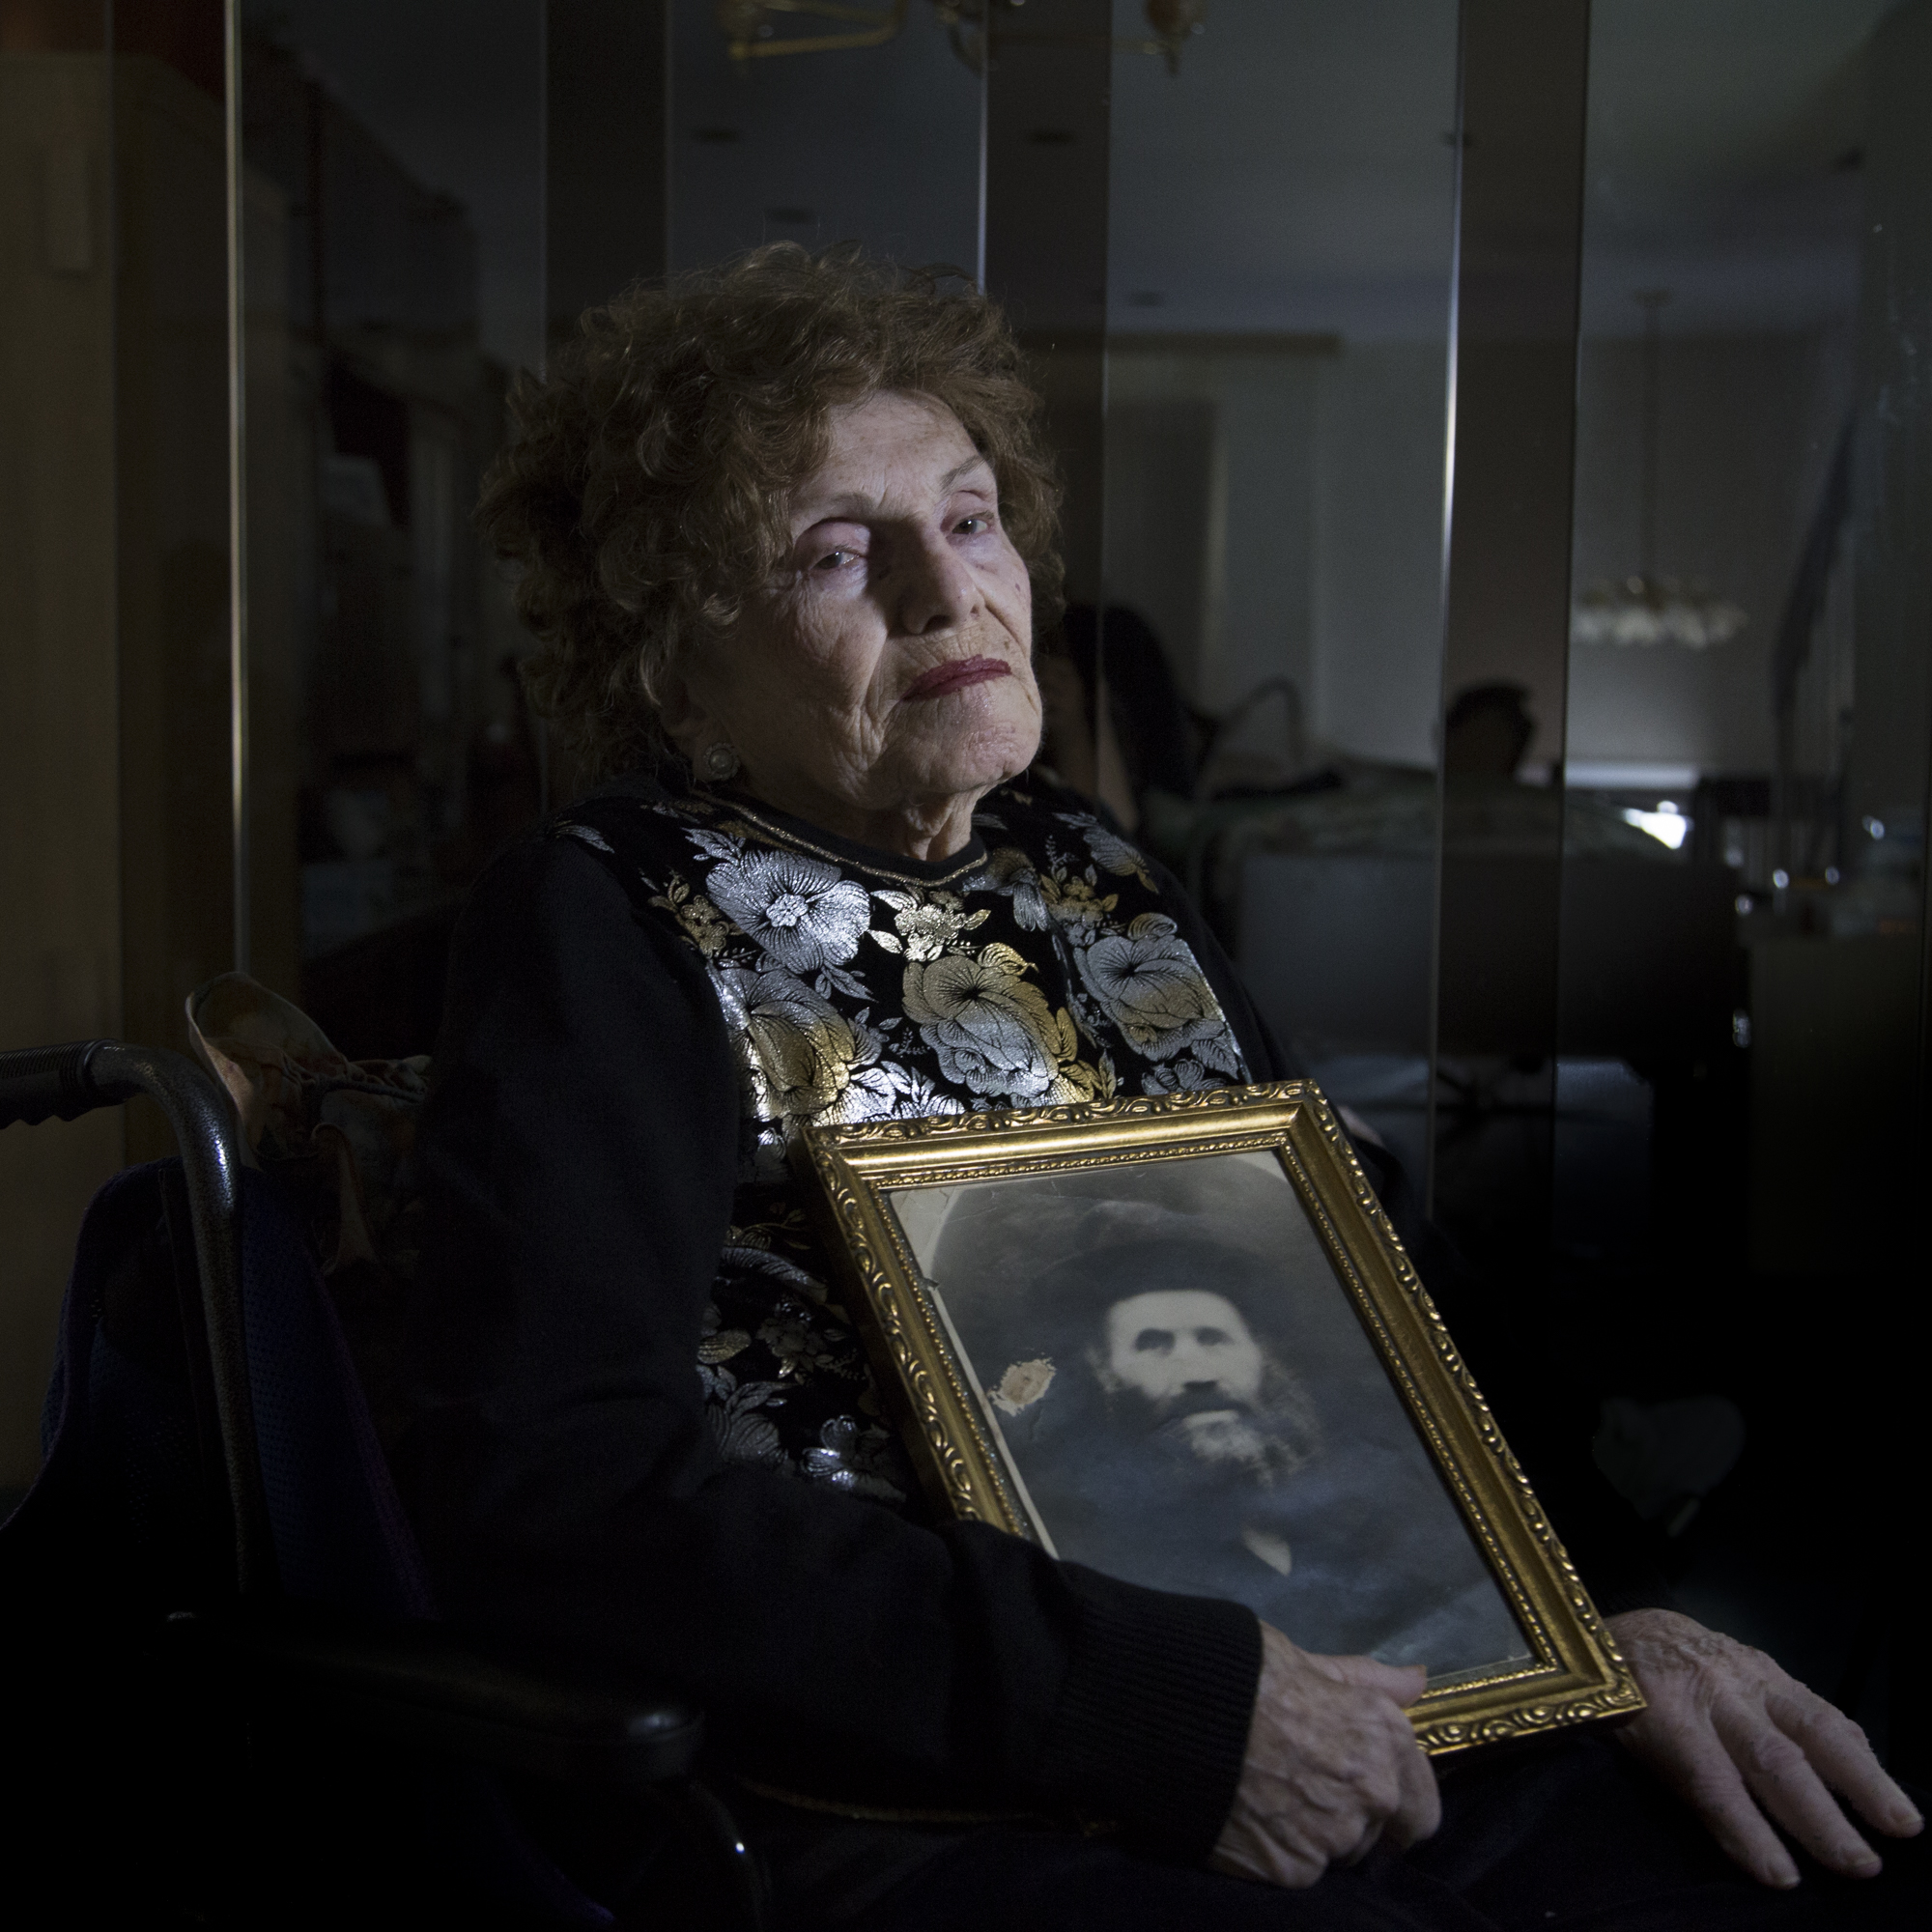 Portrait of Auschwitz survivor Rachel Gottlieb holding a photo of her father. The last time she saw him, she handed him his tallis (prayer shawl) and tefilin (a prayer leather box containing verses of the Torah inscribed on parchment) in the Dragomiresti ghetto. Shortly after, he was killed in the crematorium at the Auschwitz concentration camp.